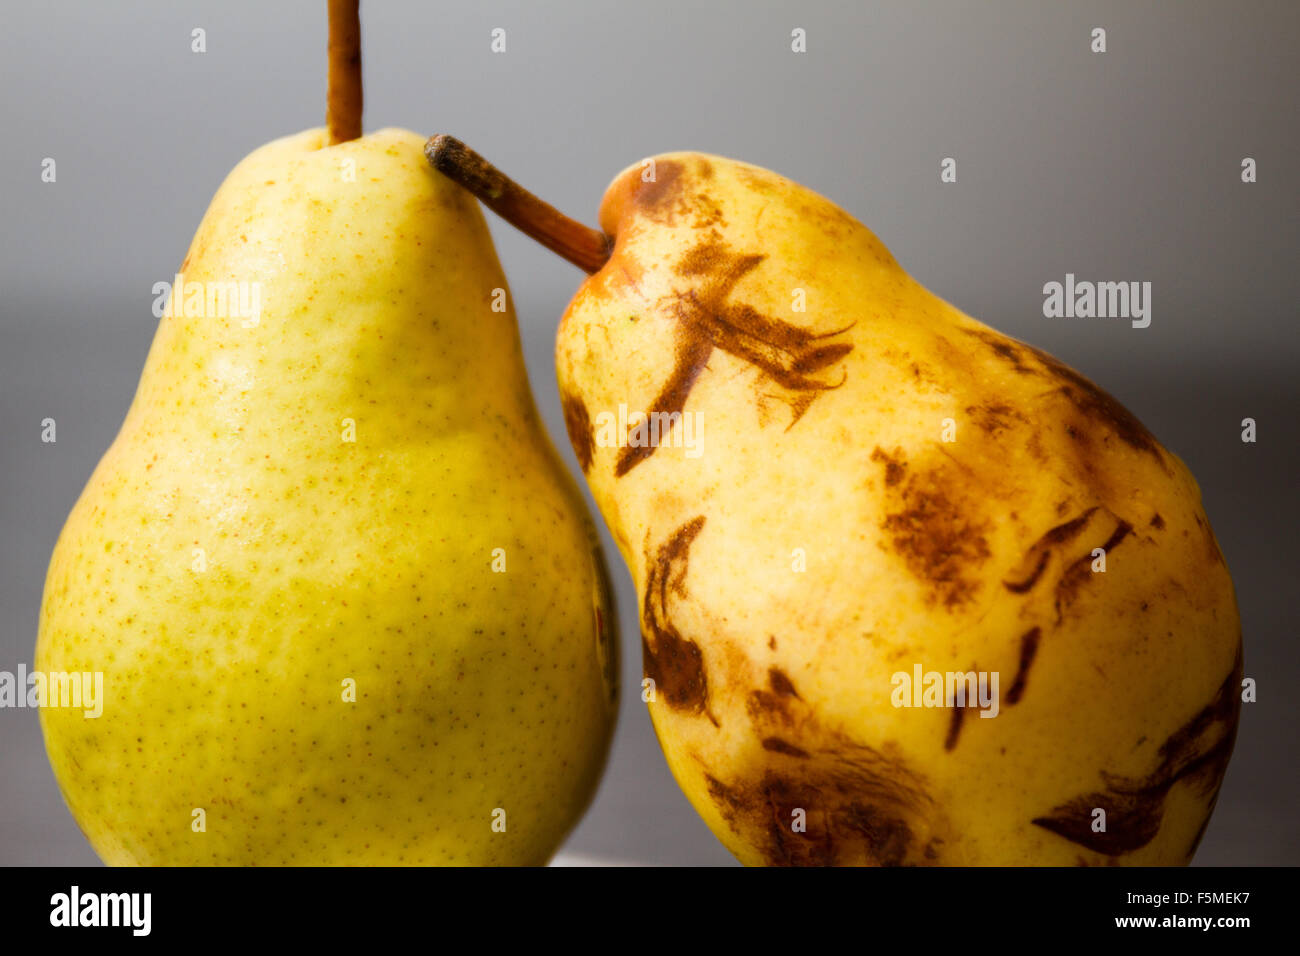 A bruised pear leaning on a ripe, fresh pear. - Stock Image